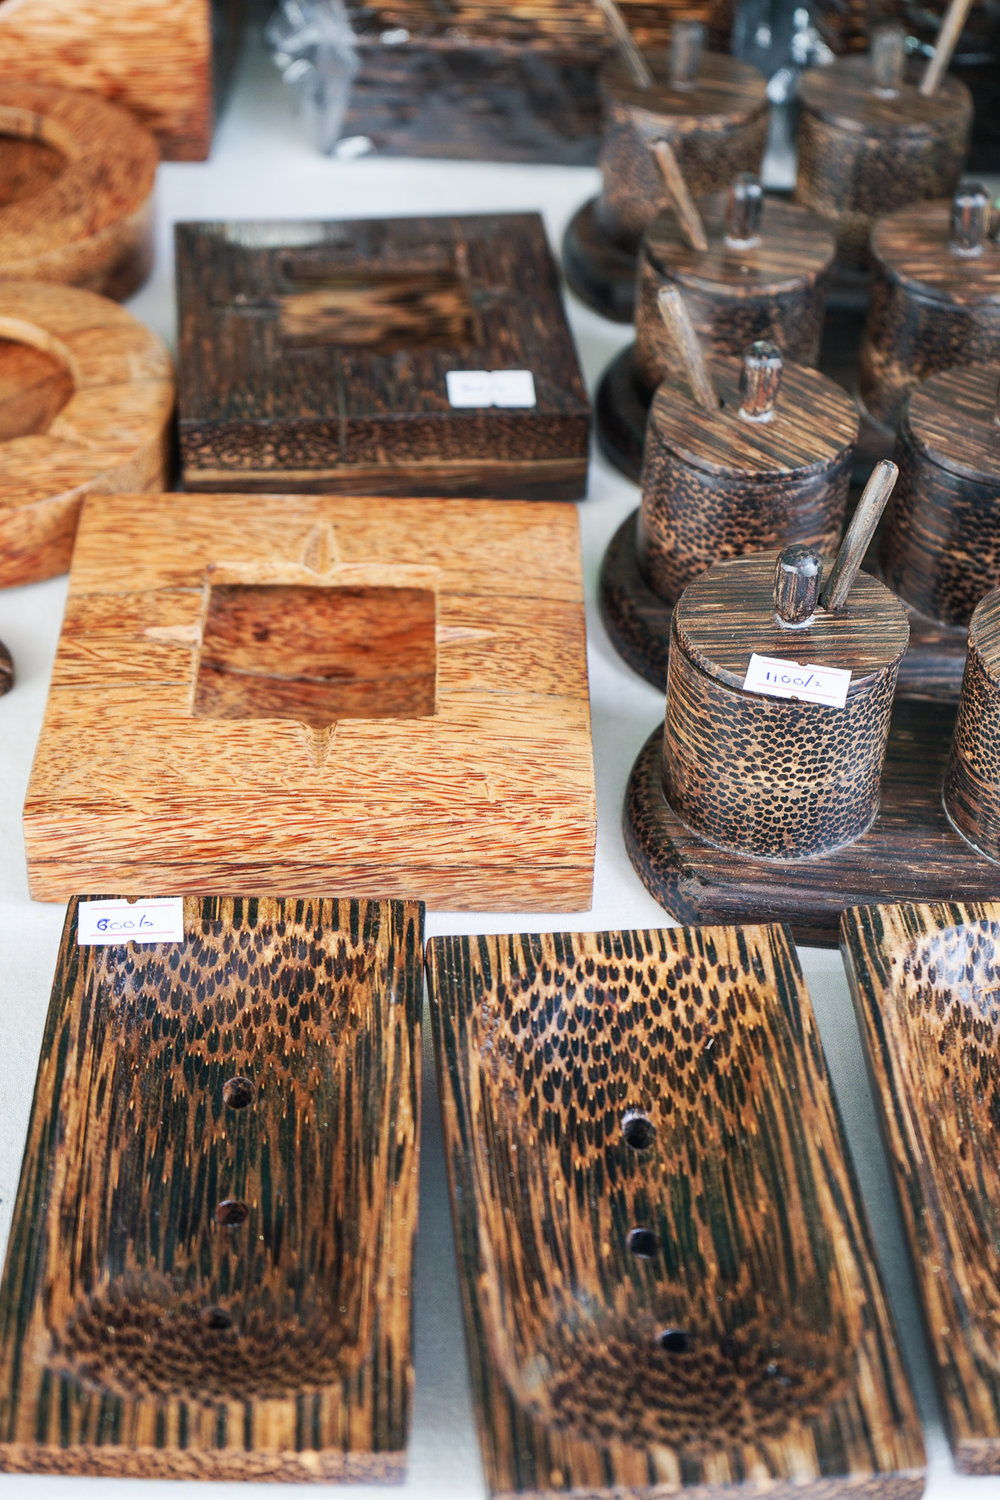 Colombo shopping guide - coconut husk homewares at Good Market